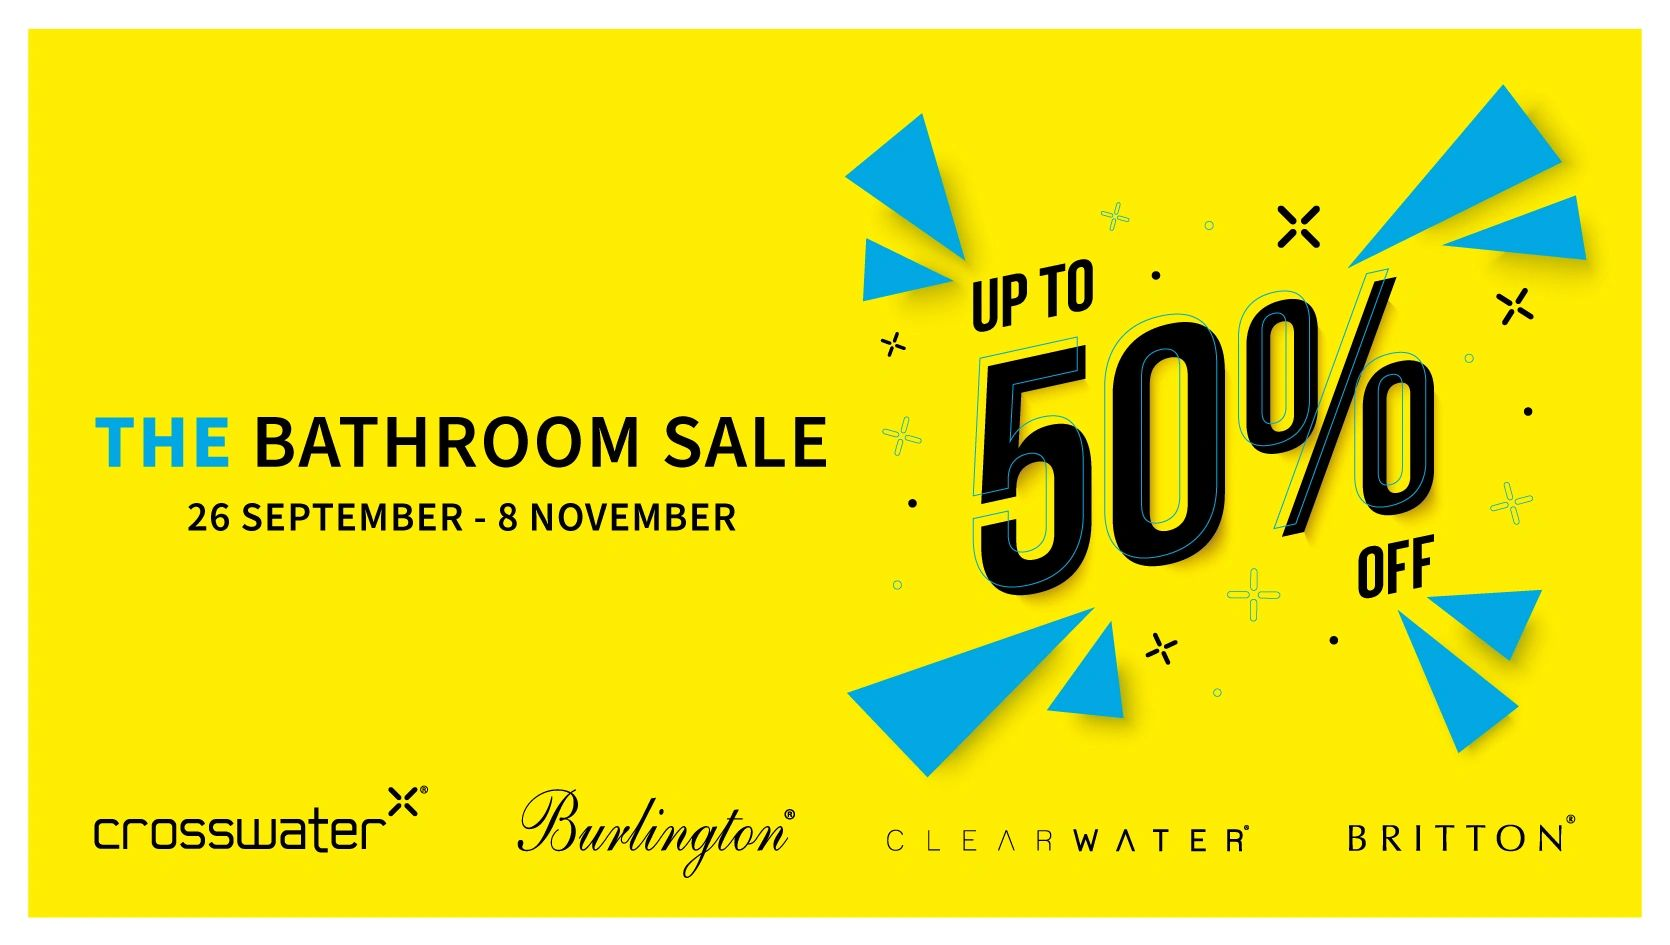 The big Bathroom Sale has arrived at First Class featuring Crosswater Burlington Clearwater Britton